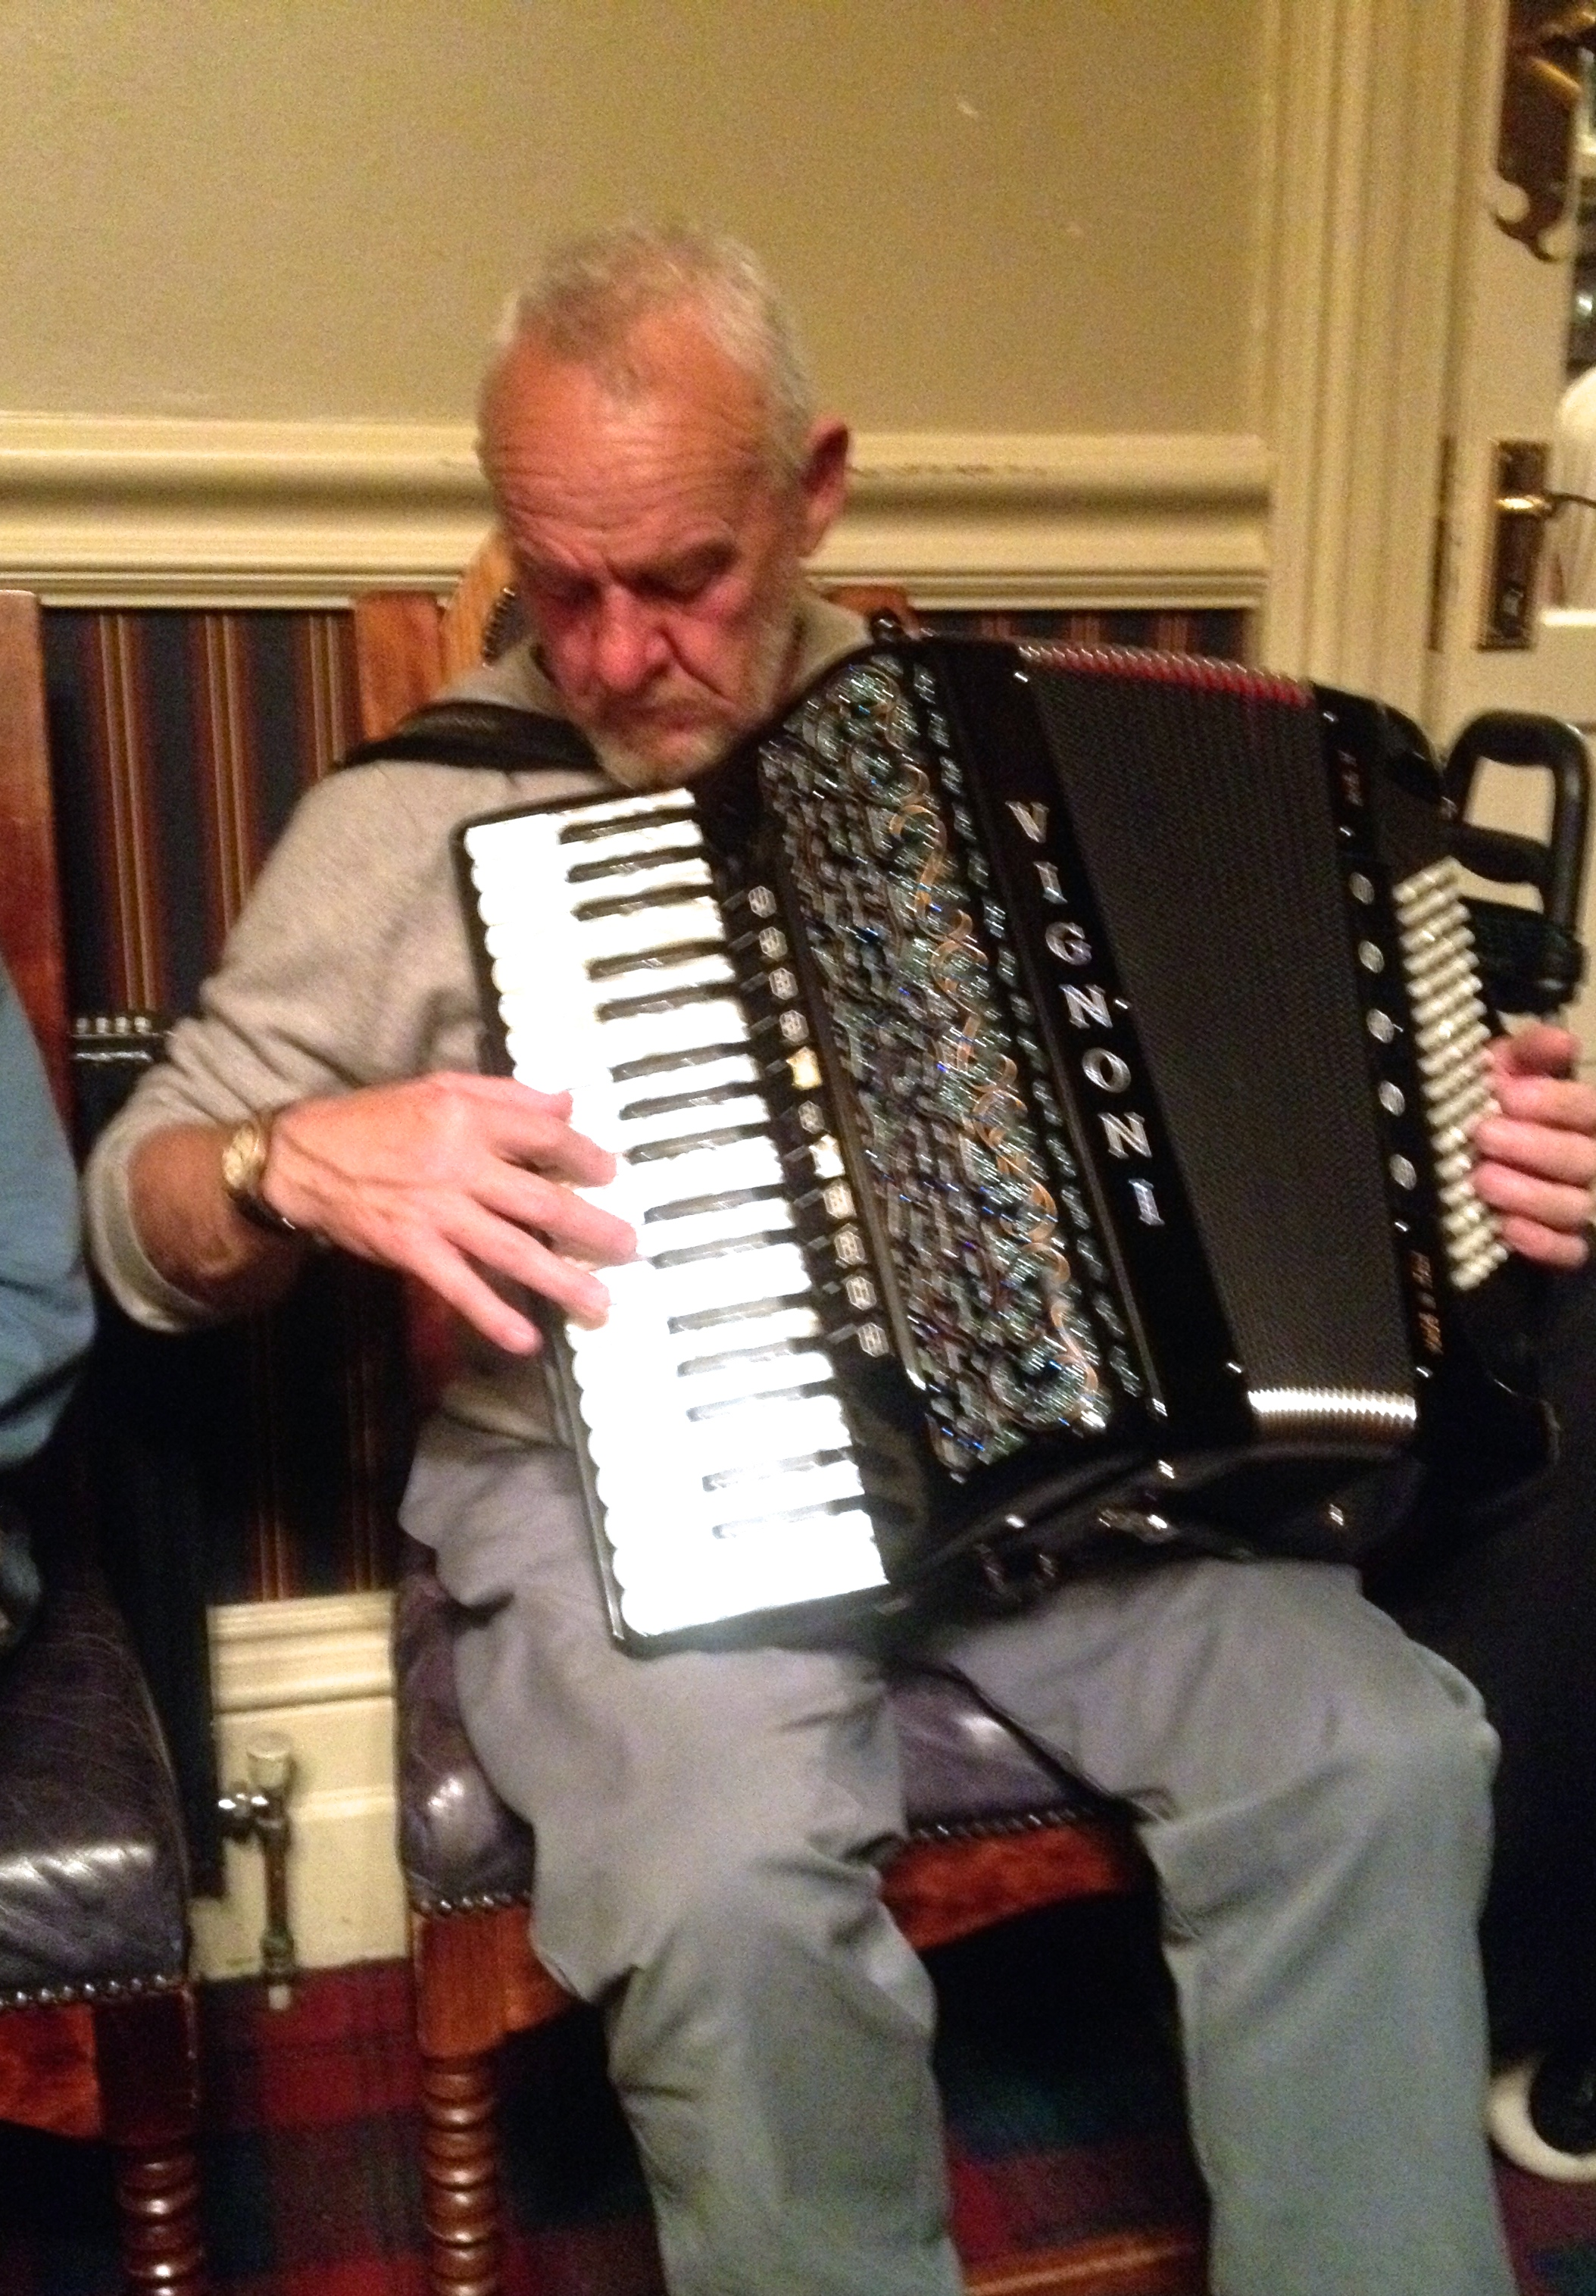 Look at that accordion!